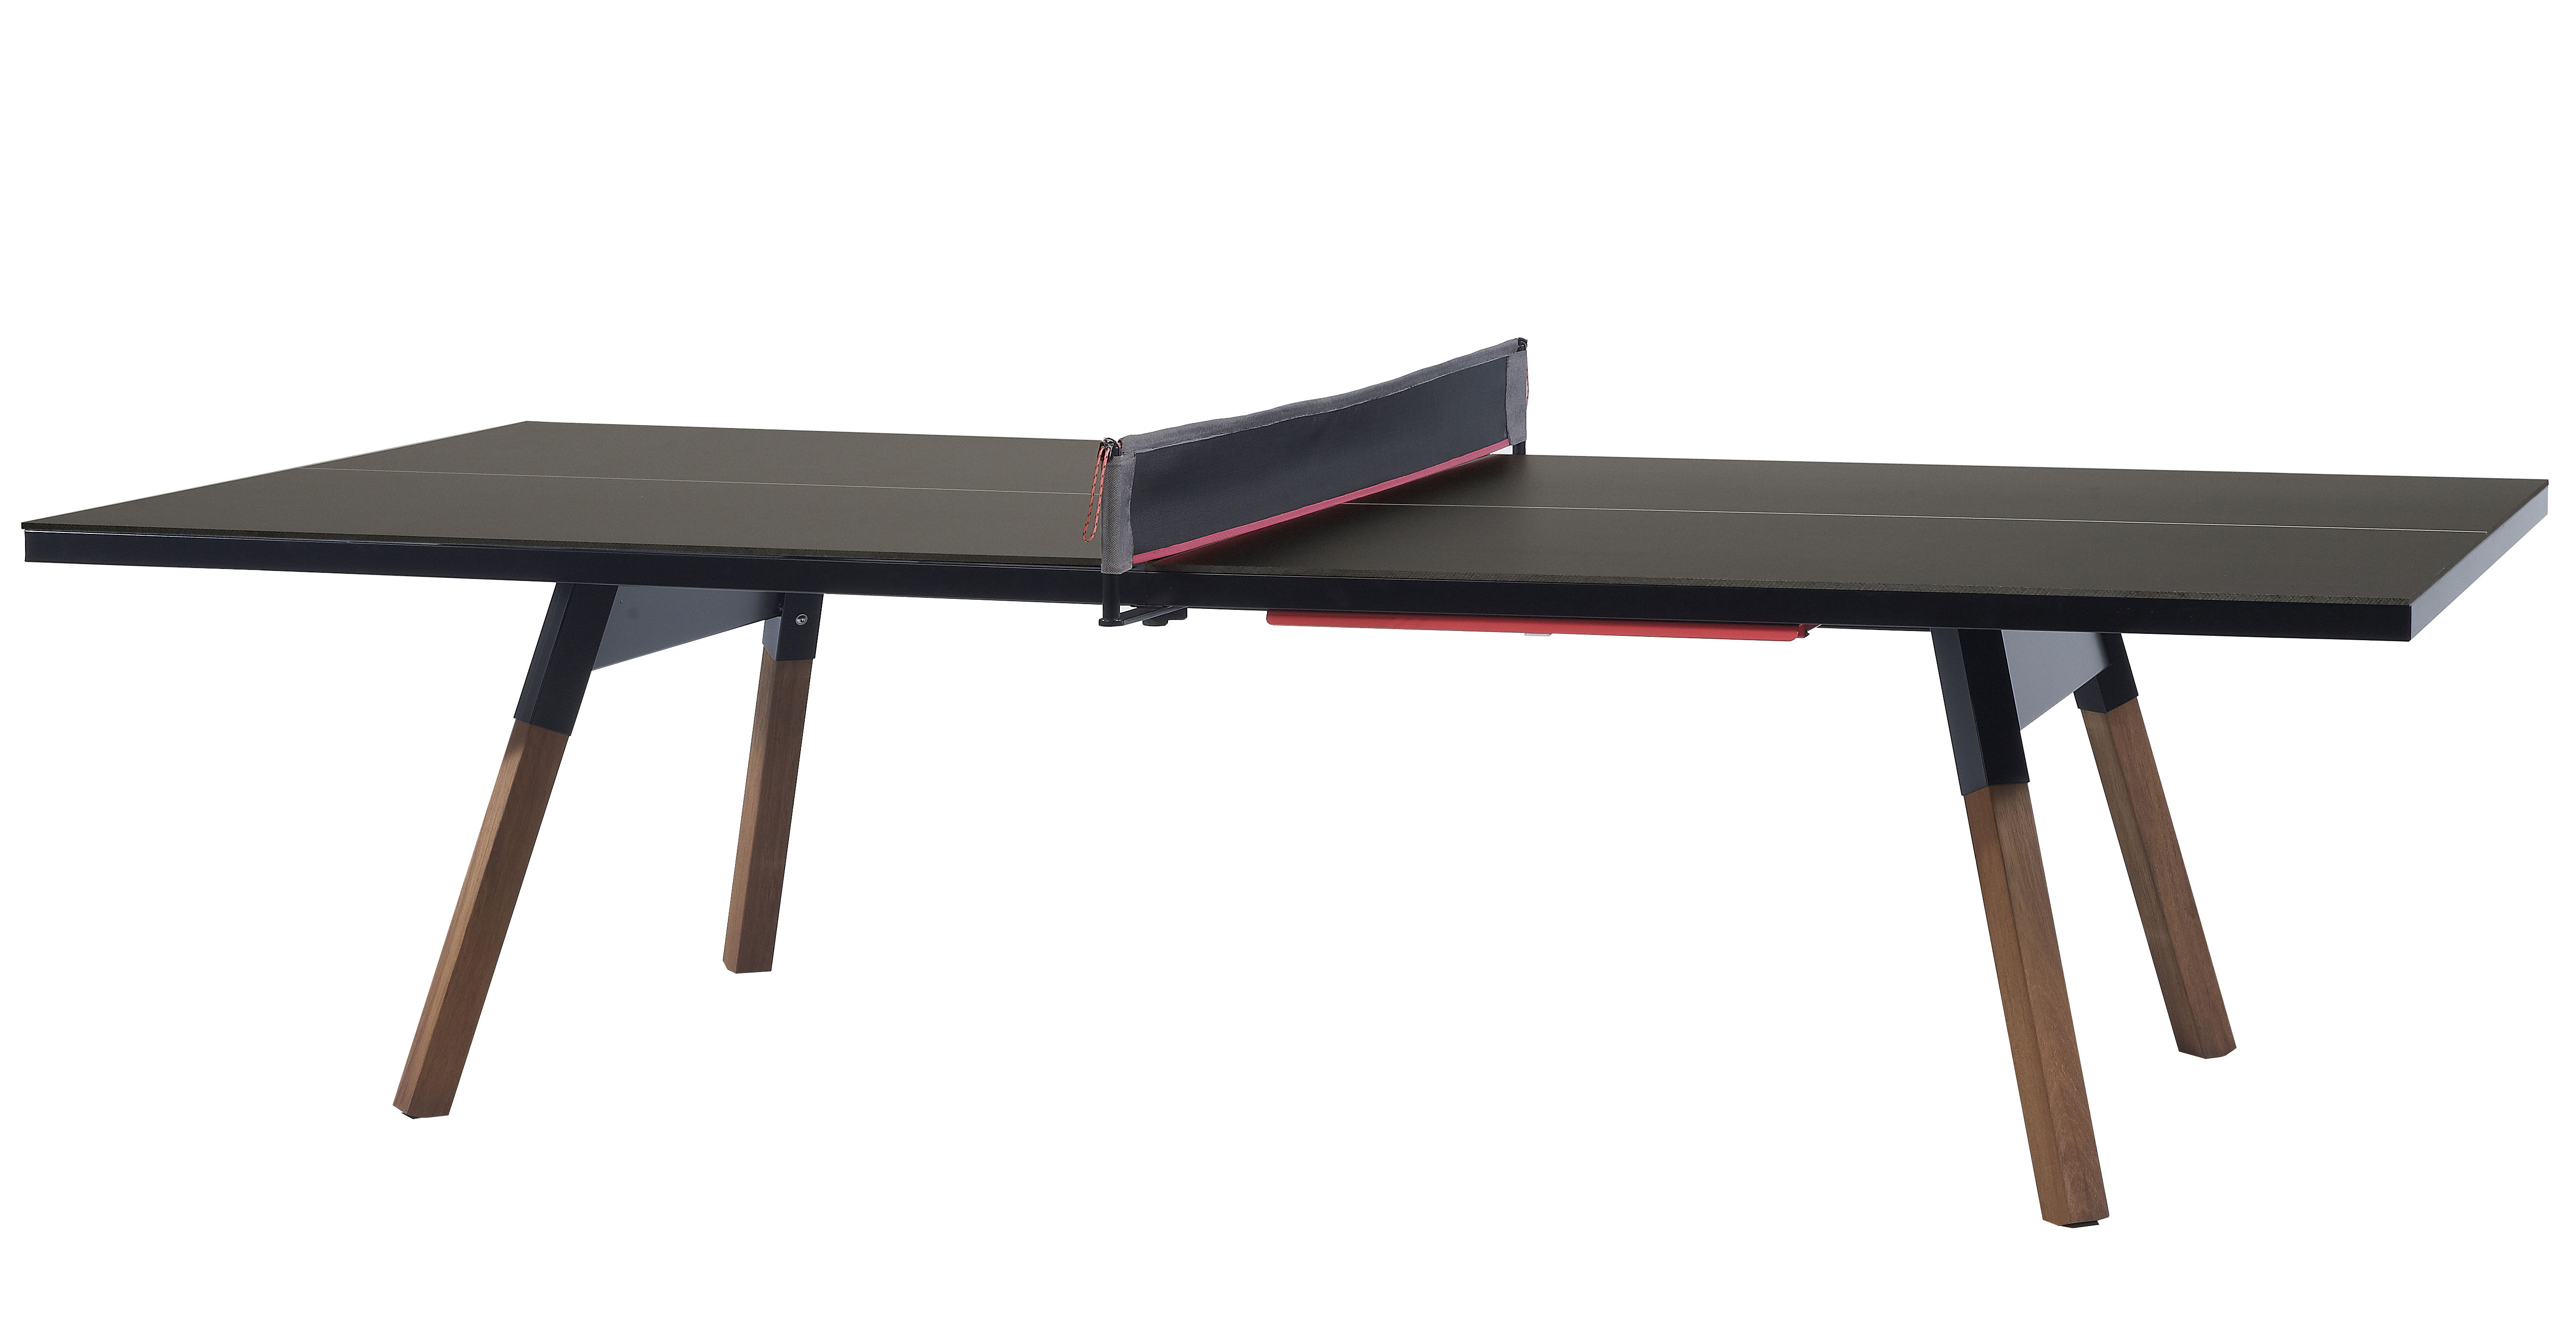 table l 274 cm ping pong dining table black wood legs by rs barcelona. Black Bedroom Furniture Sets. Home Design Ideas